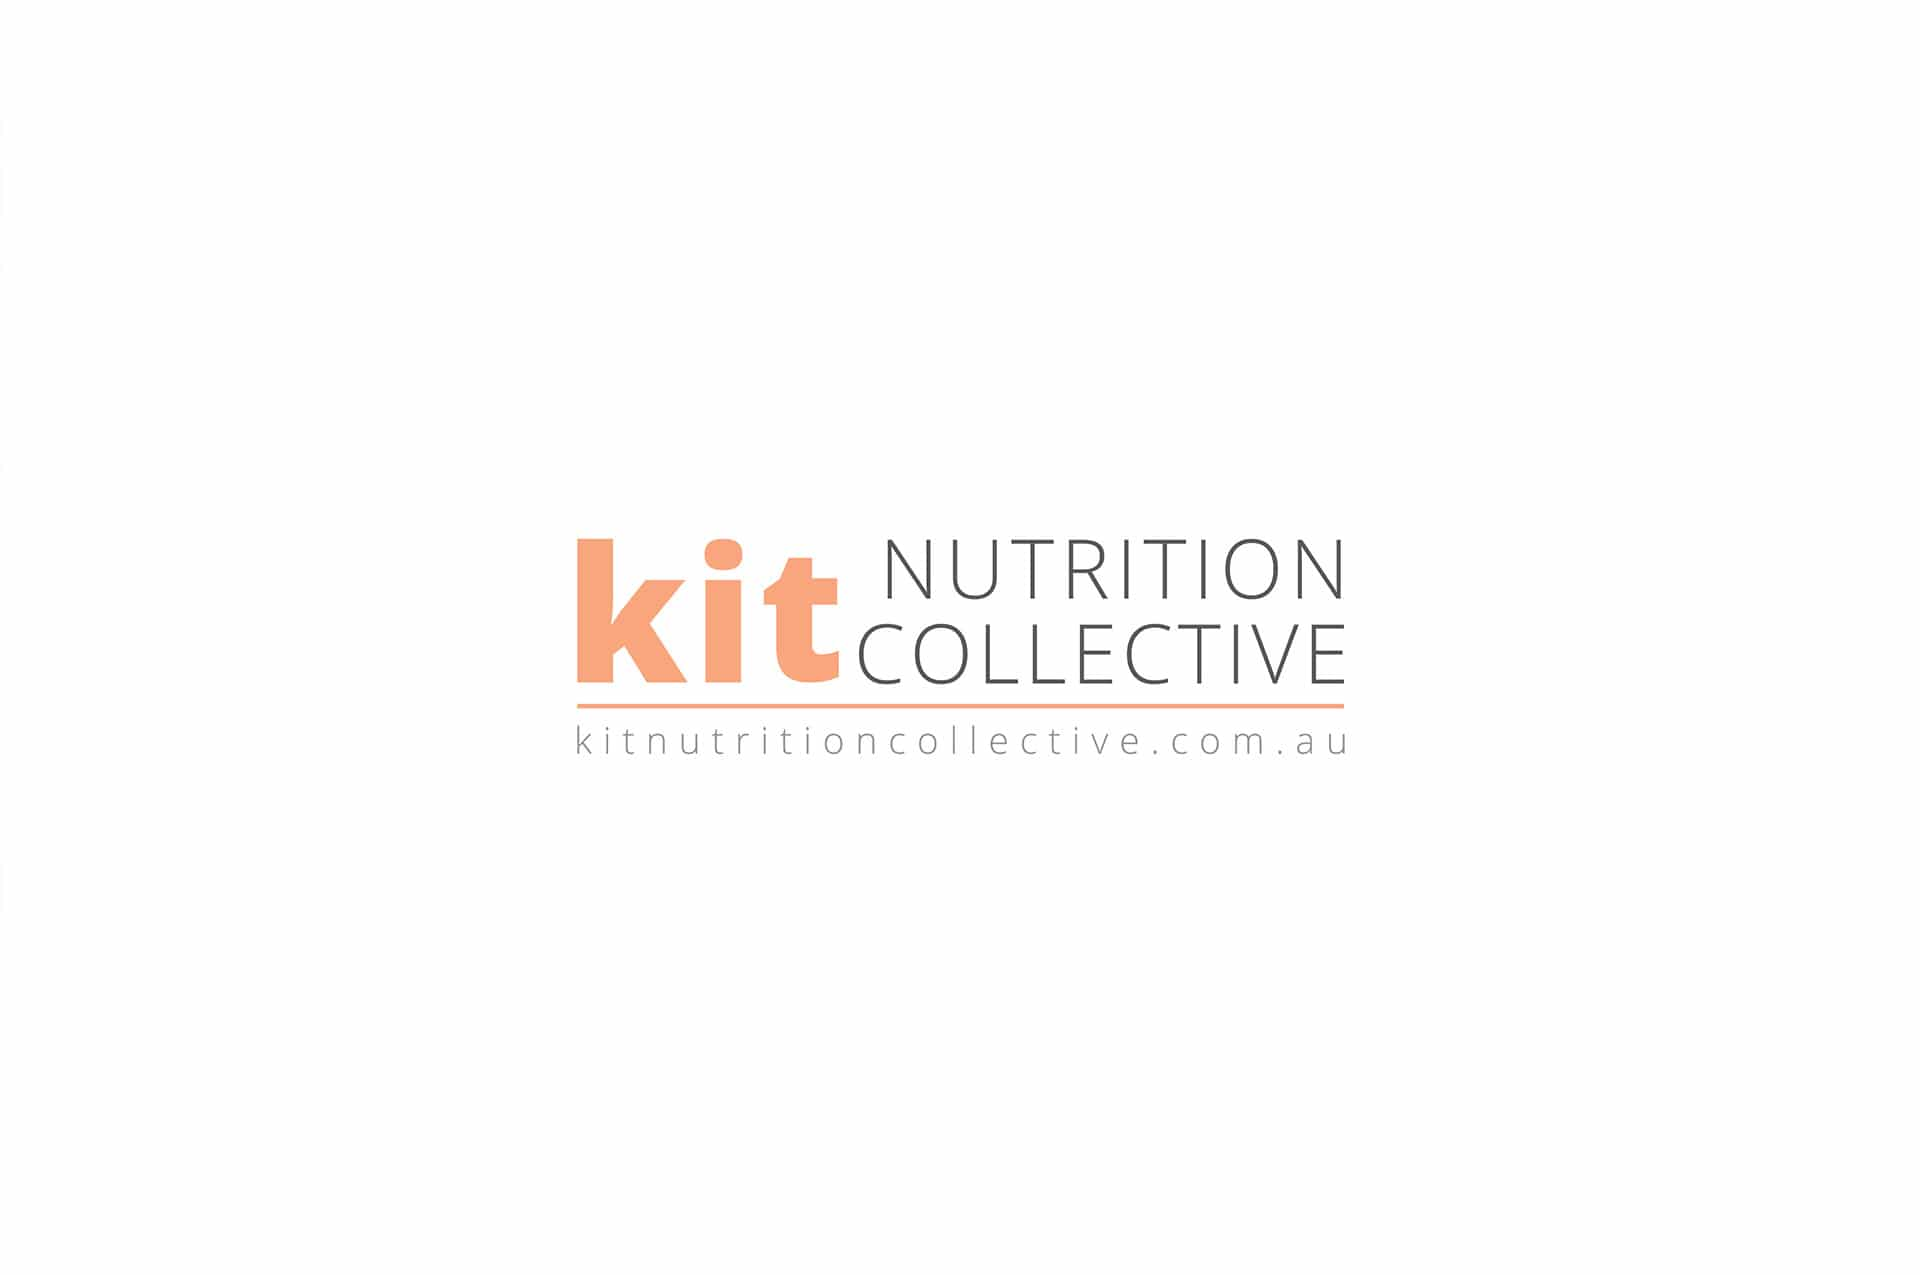 A new logo and branding design for Kit Nutrition Collective | Newcastle Creative Co